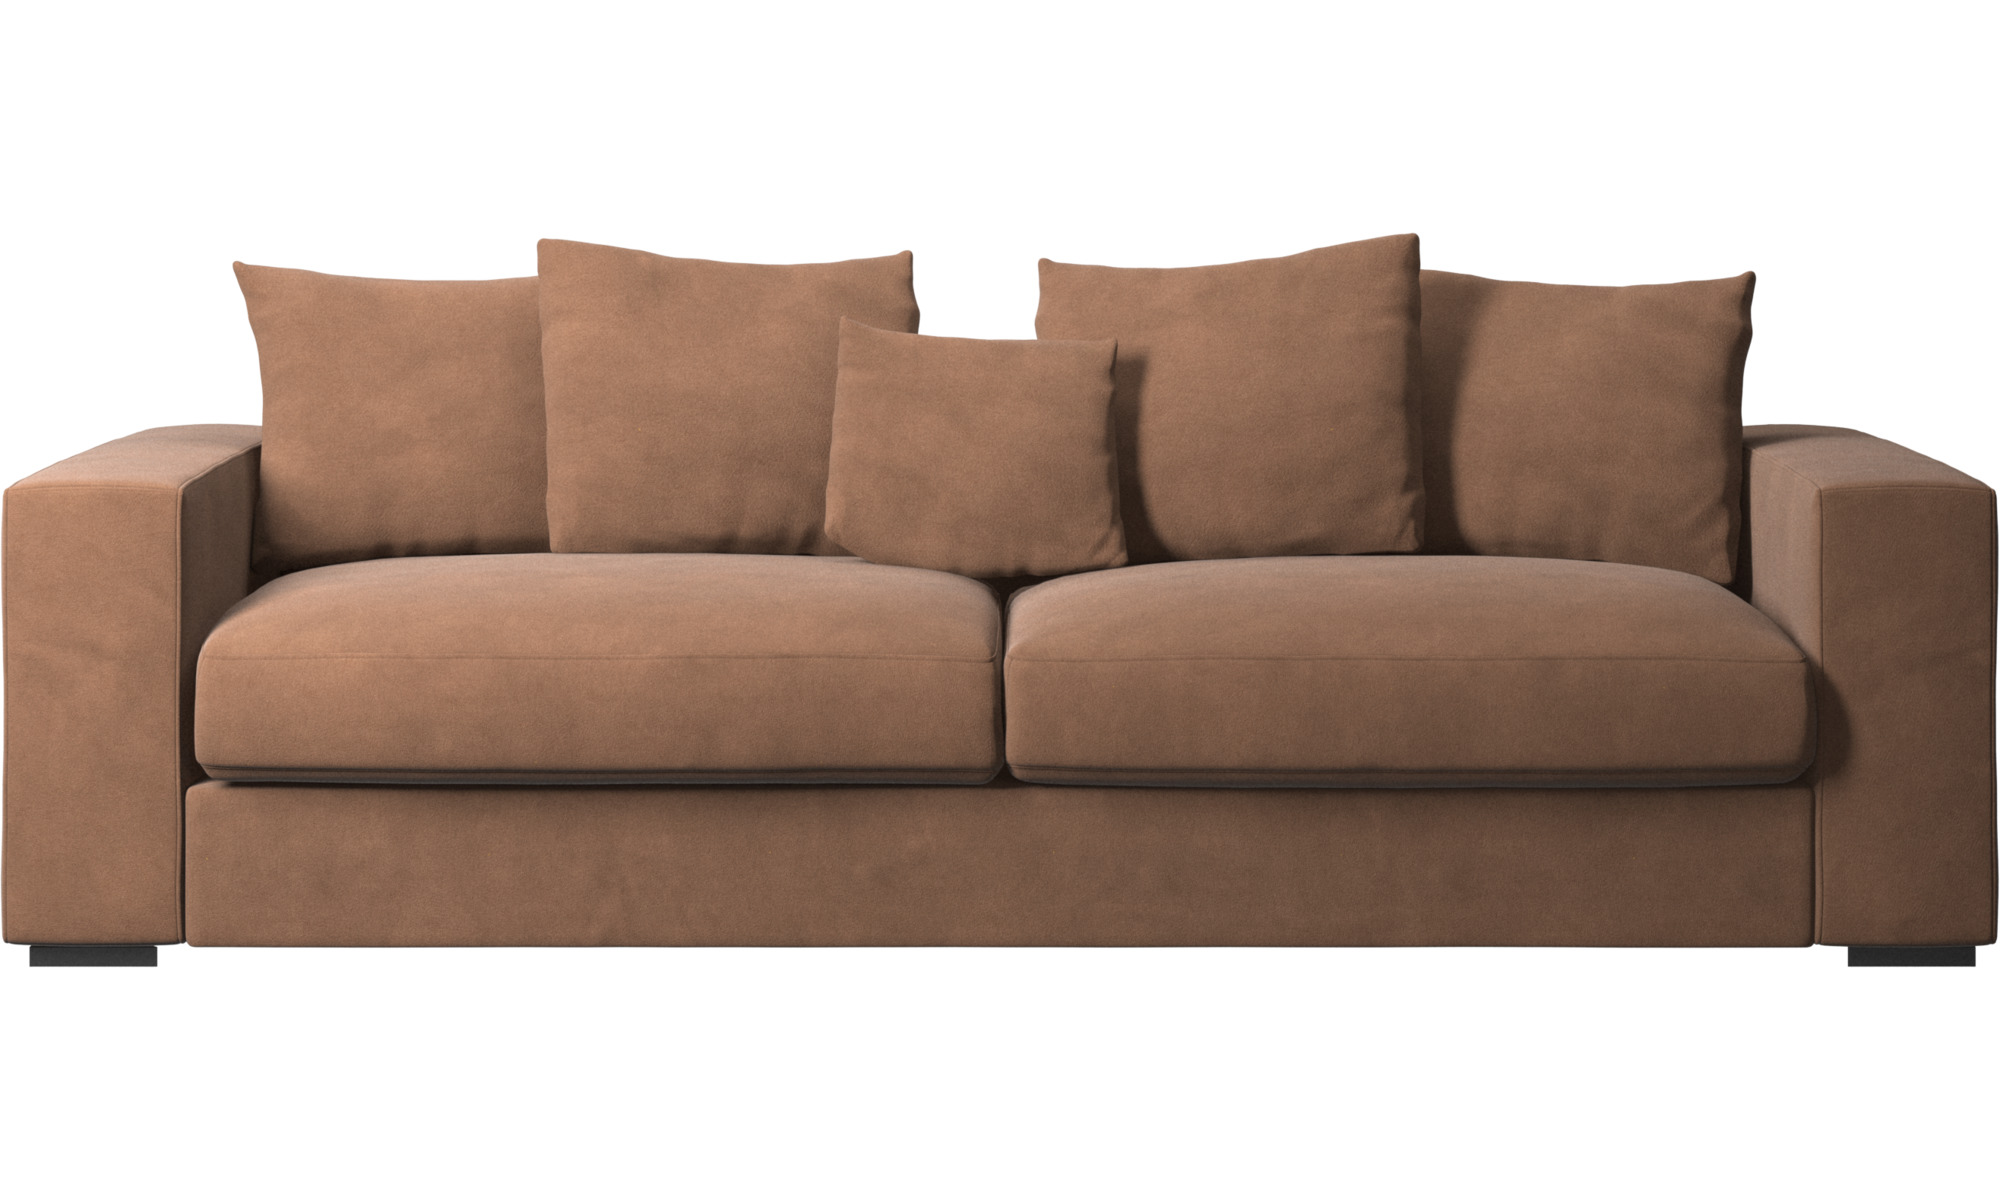 3 seater sofas cenova sofa boconcept for Sofa for